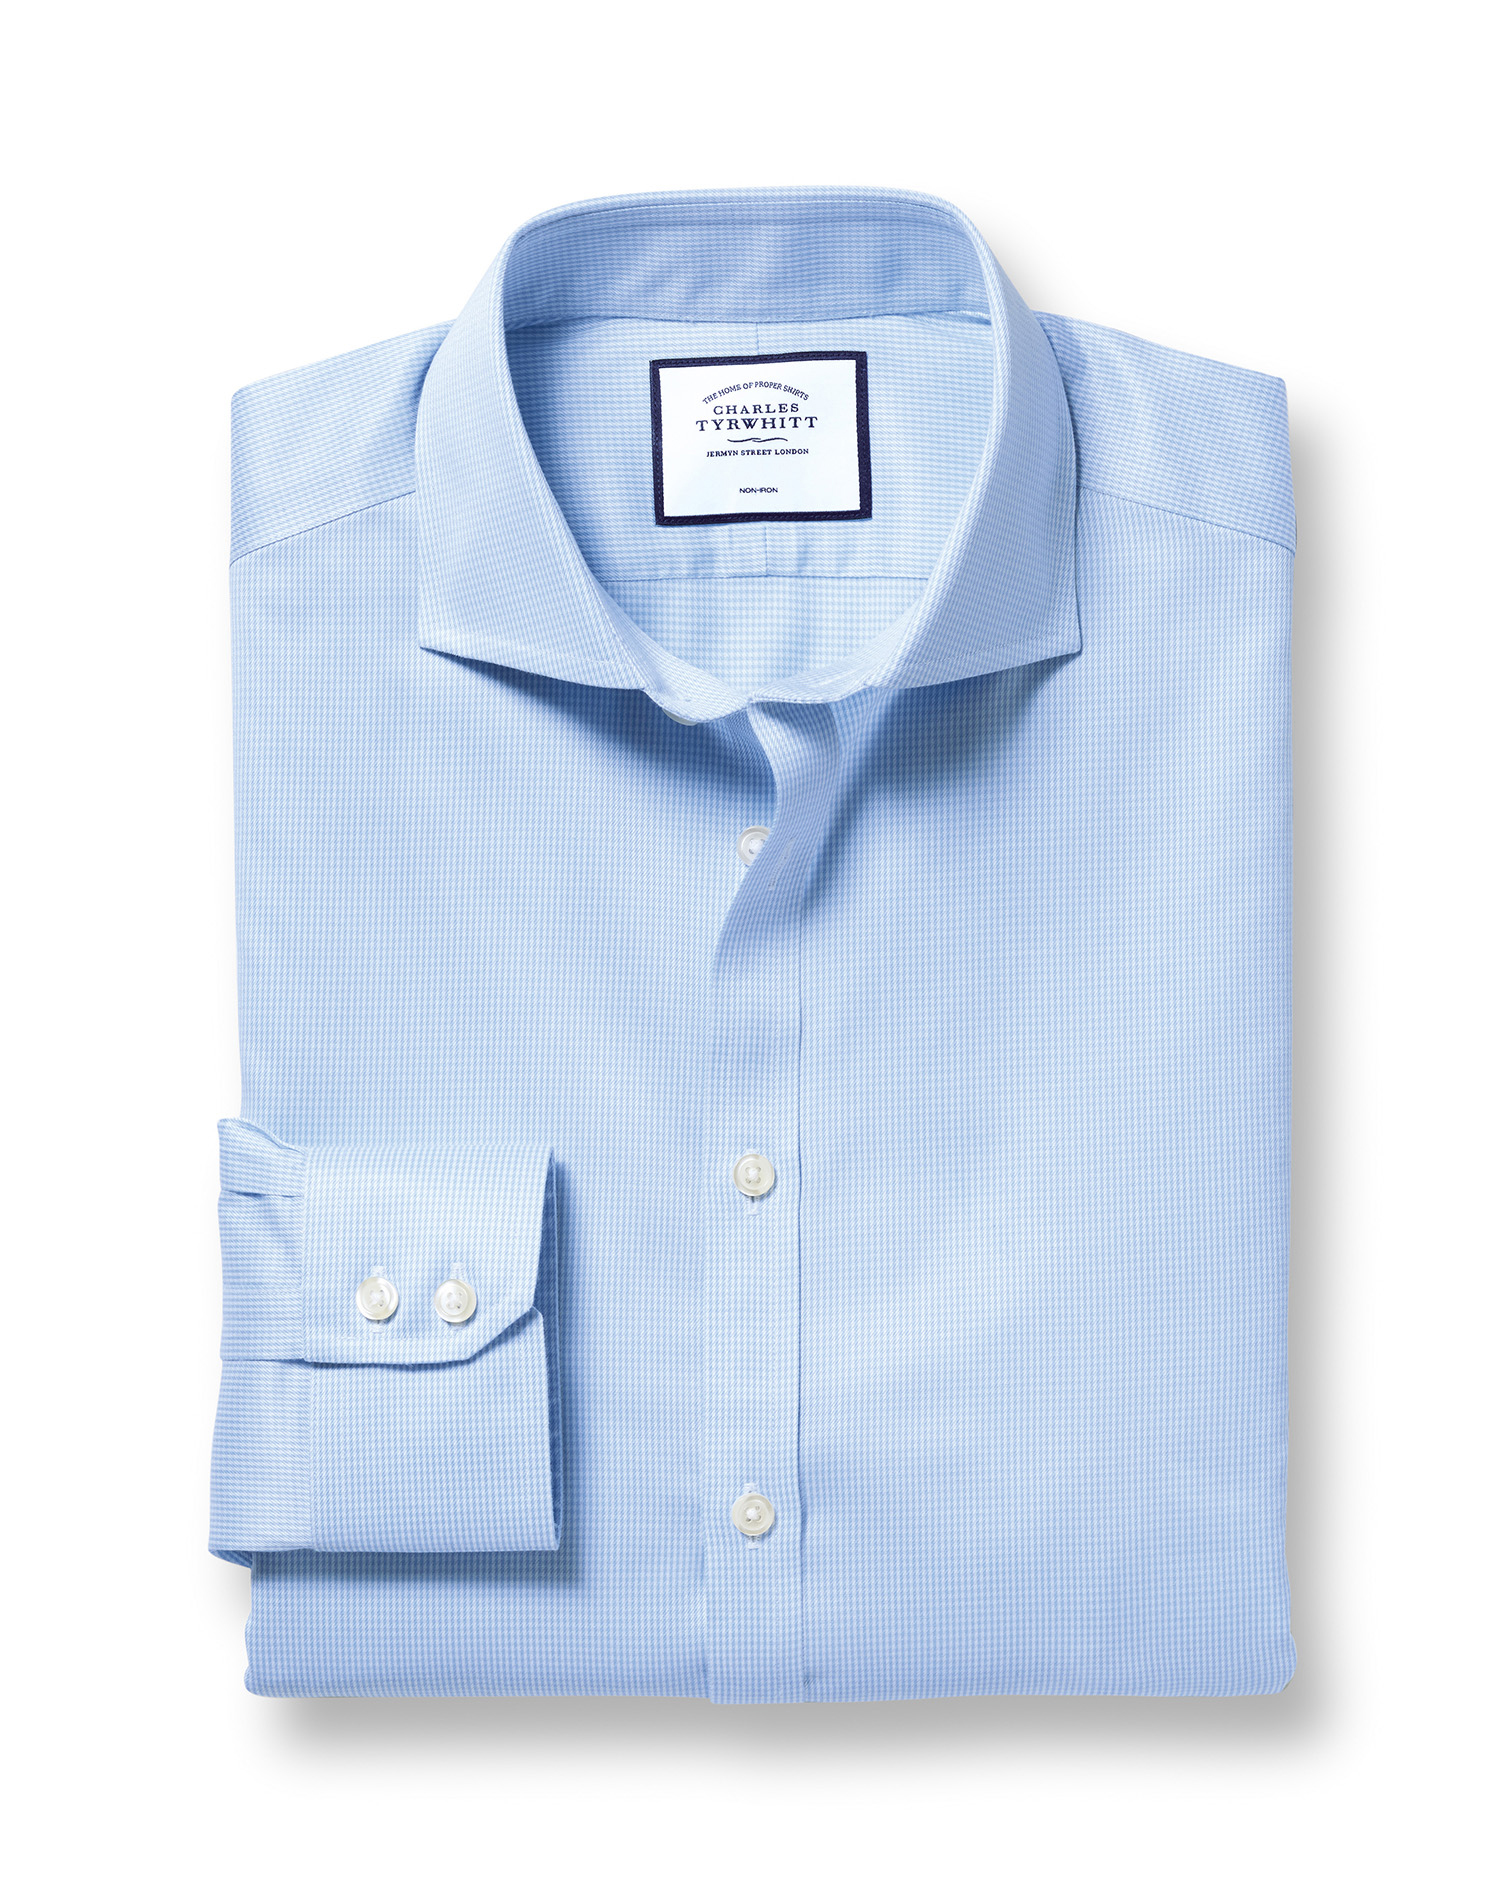 Extra Slim Fit Non-Iron Cutaway Sky Blue Puppytooth Cotton Formal Shirt Single Cuff Size 16/34 by Ch